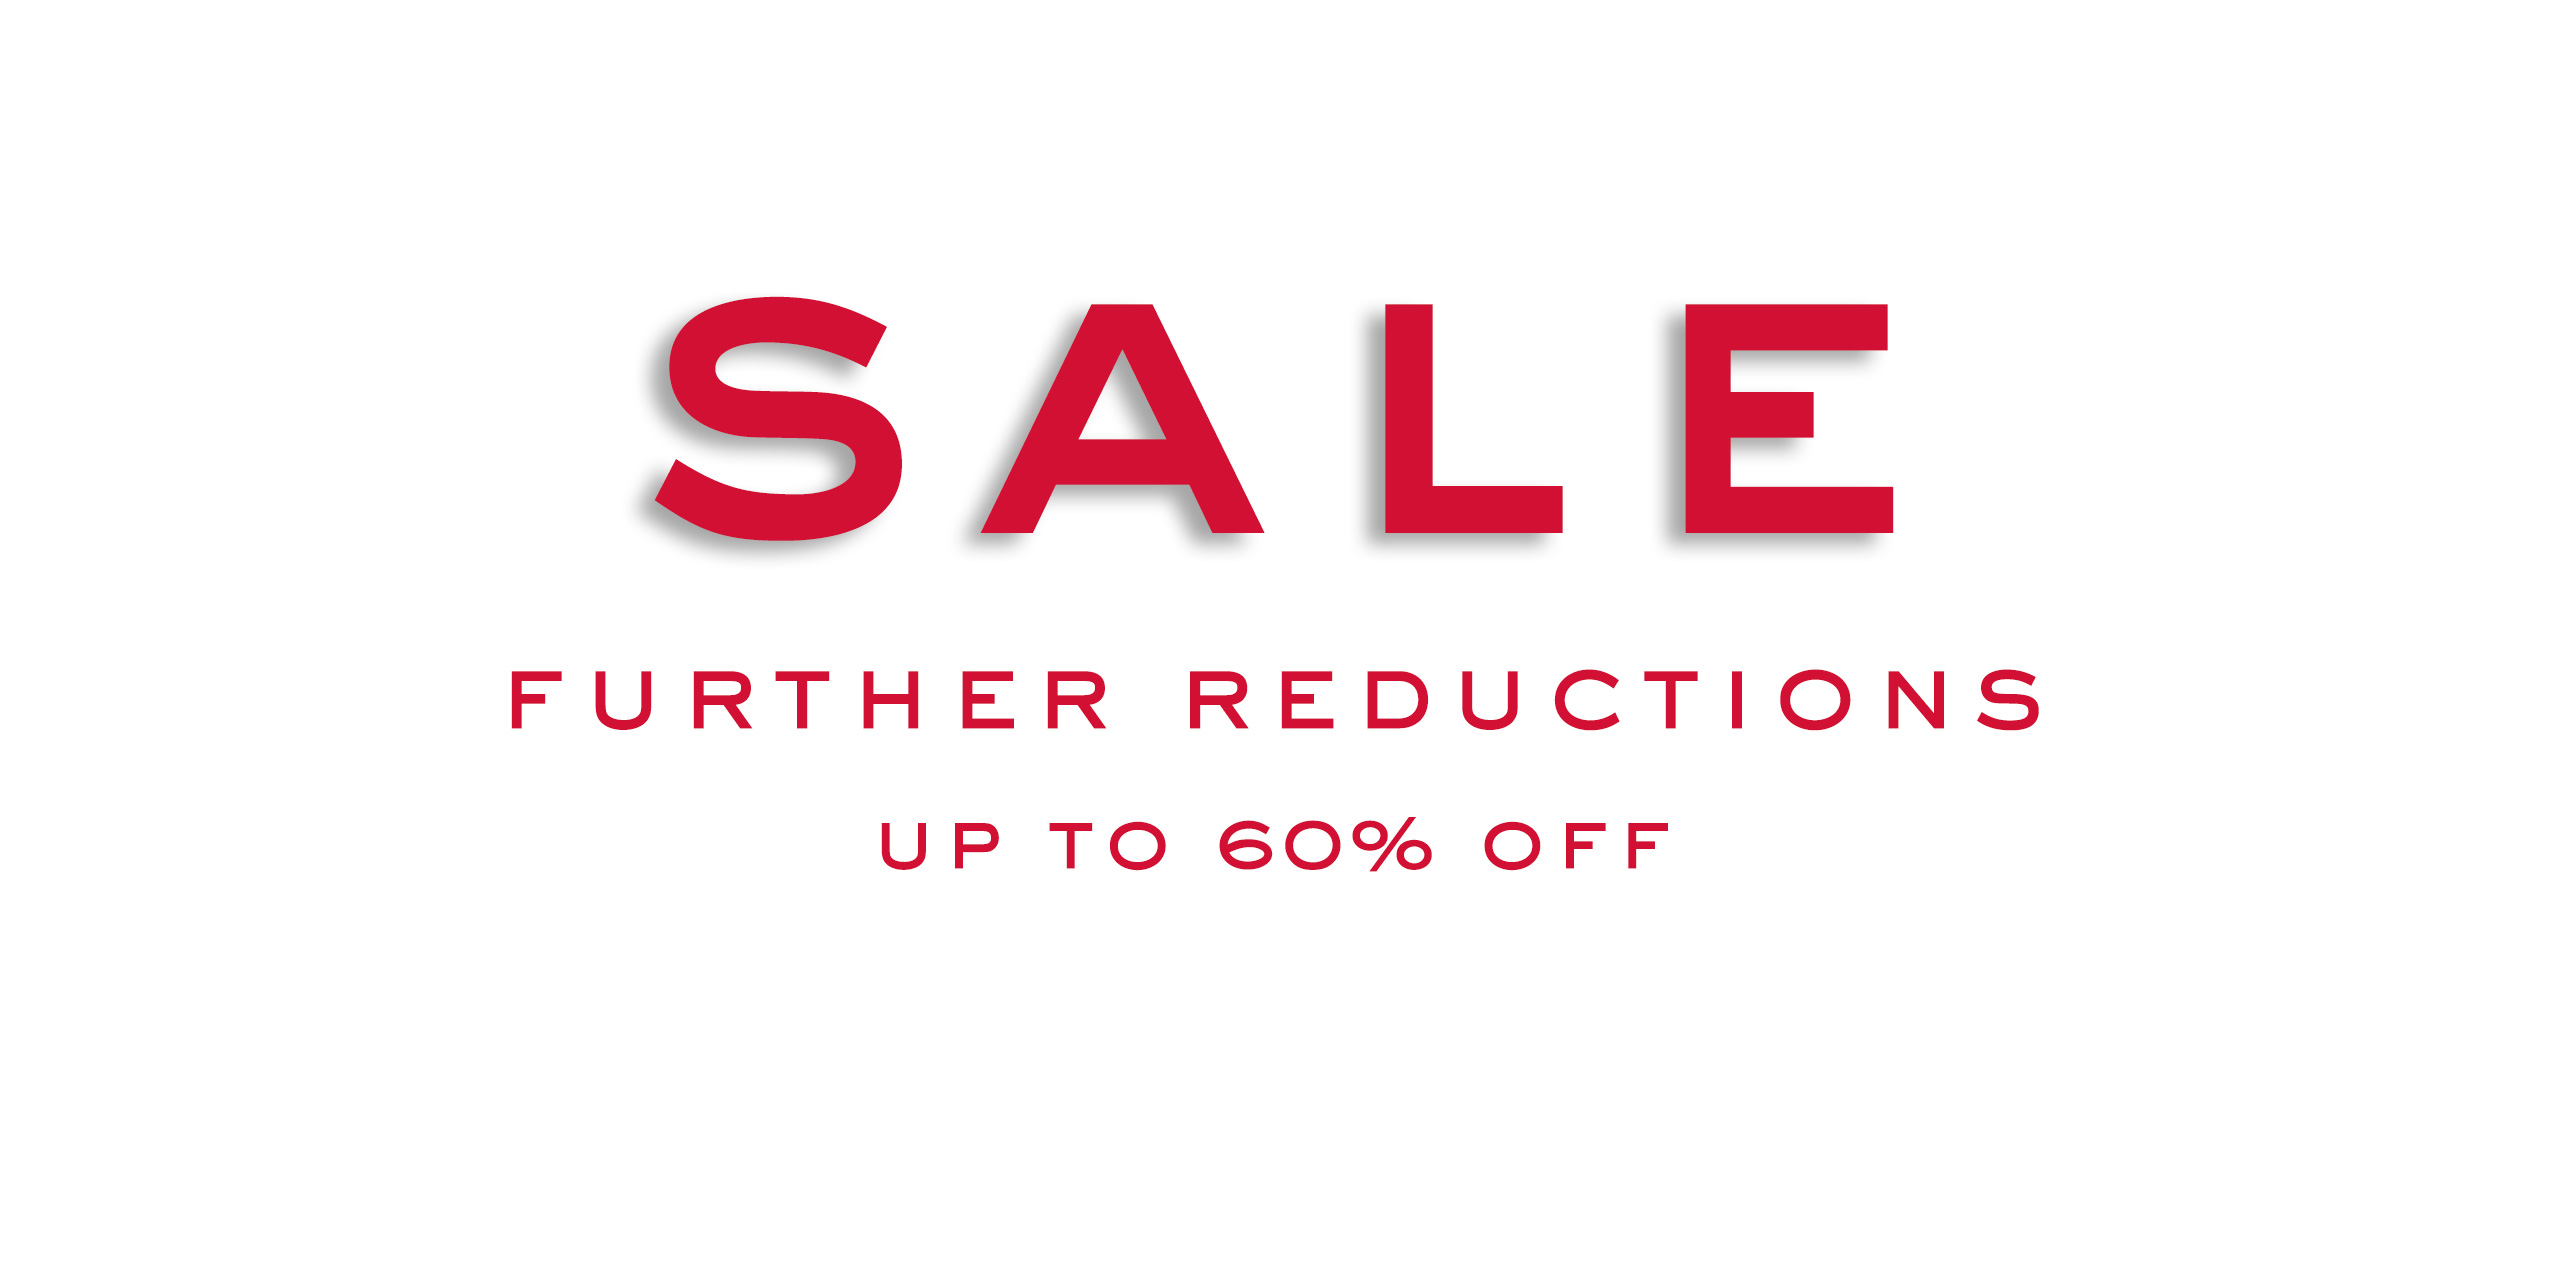 Sale: Up to 60% Off